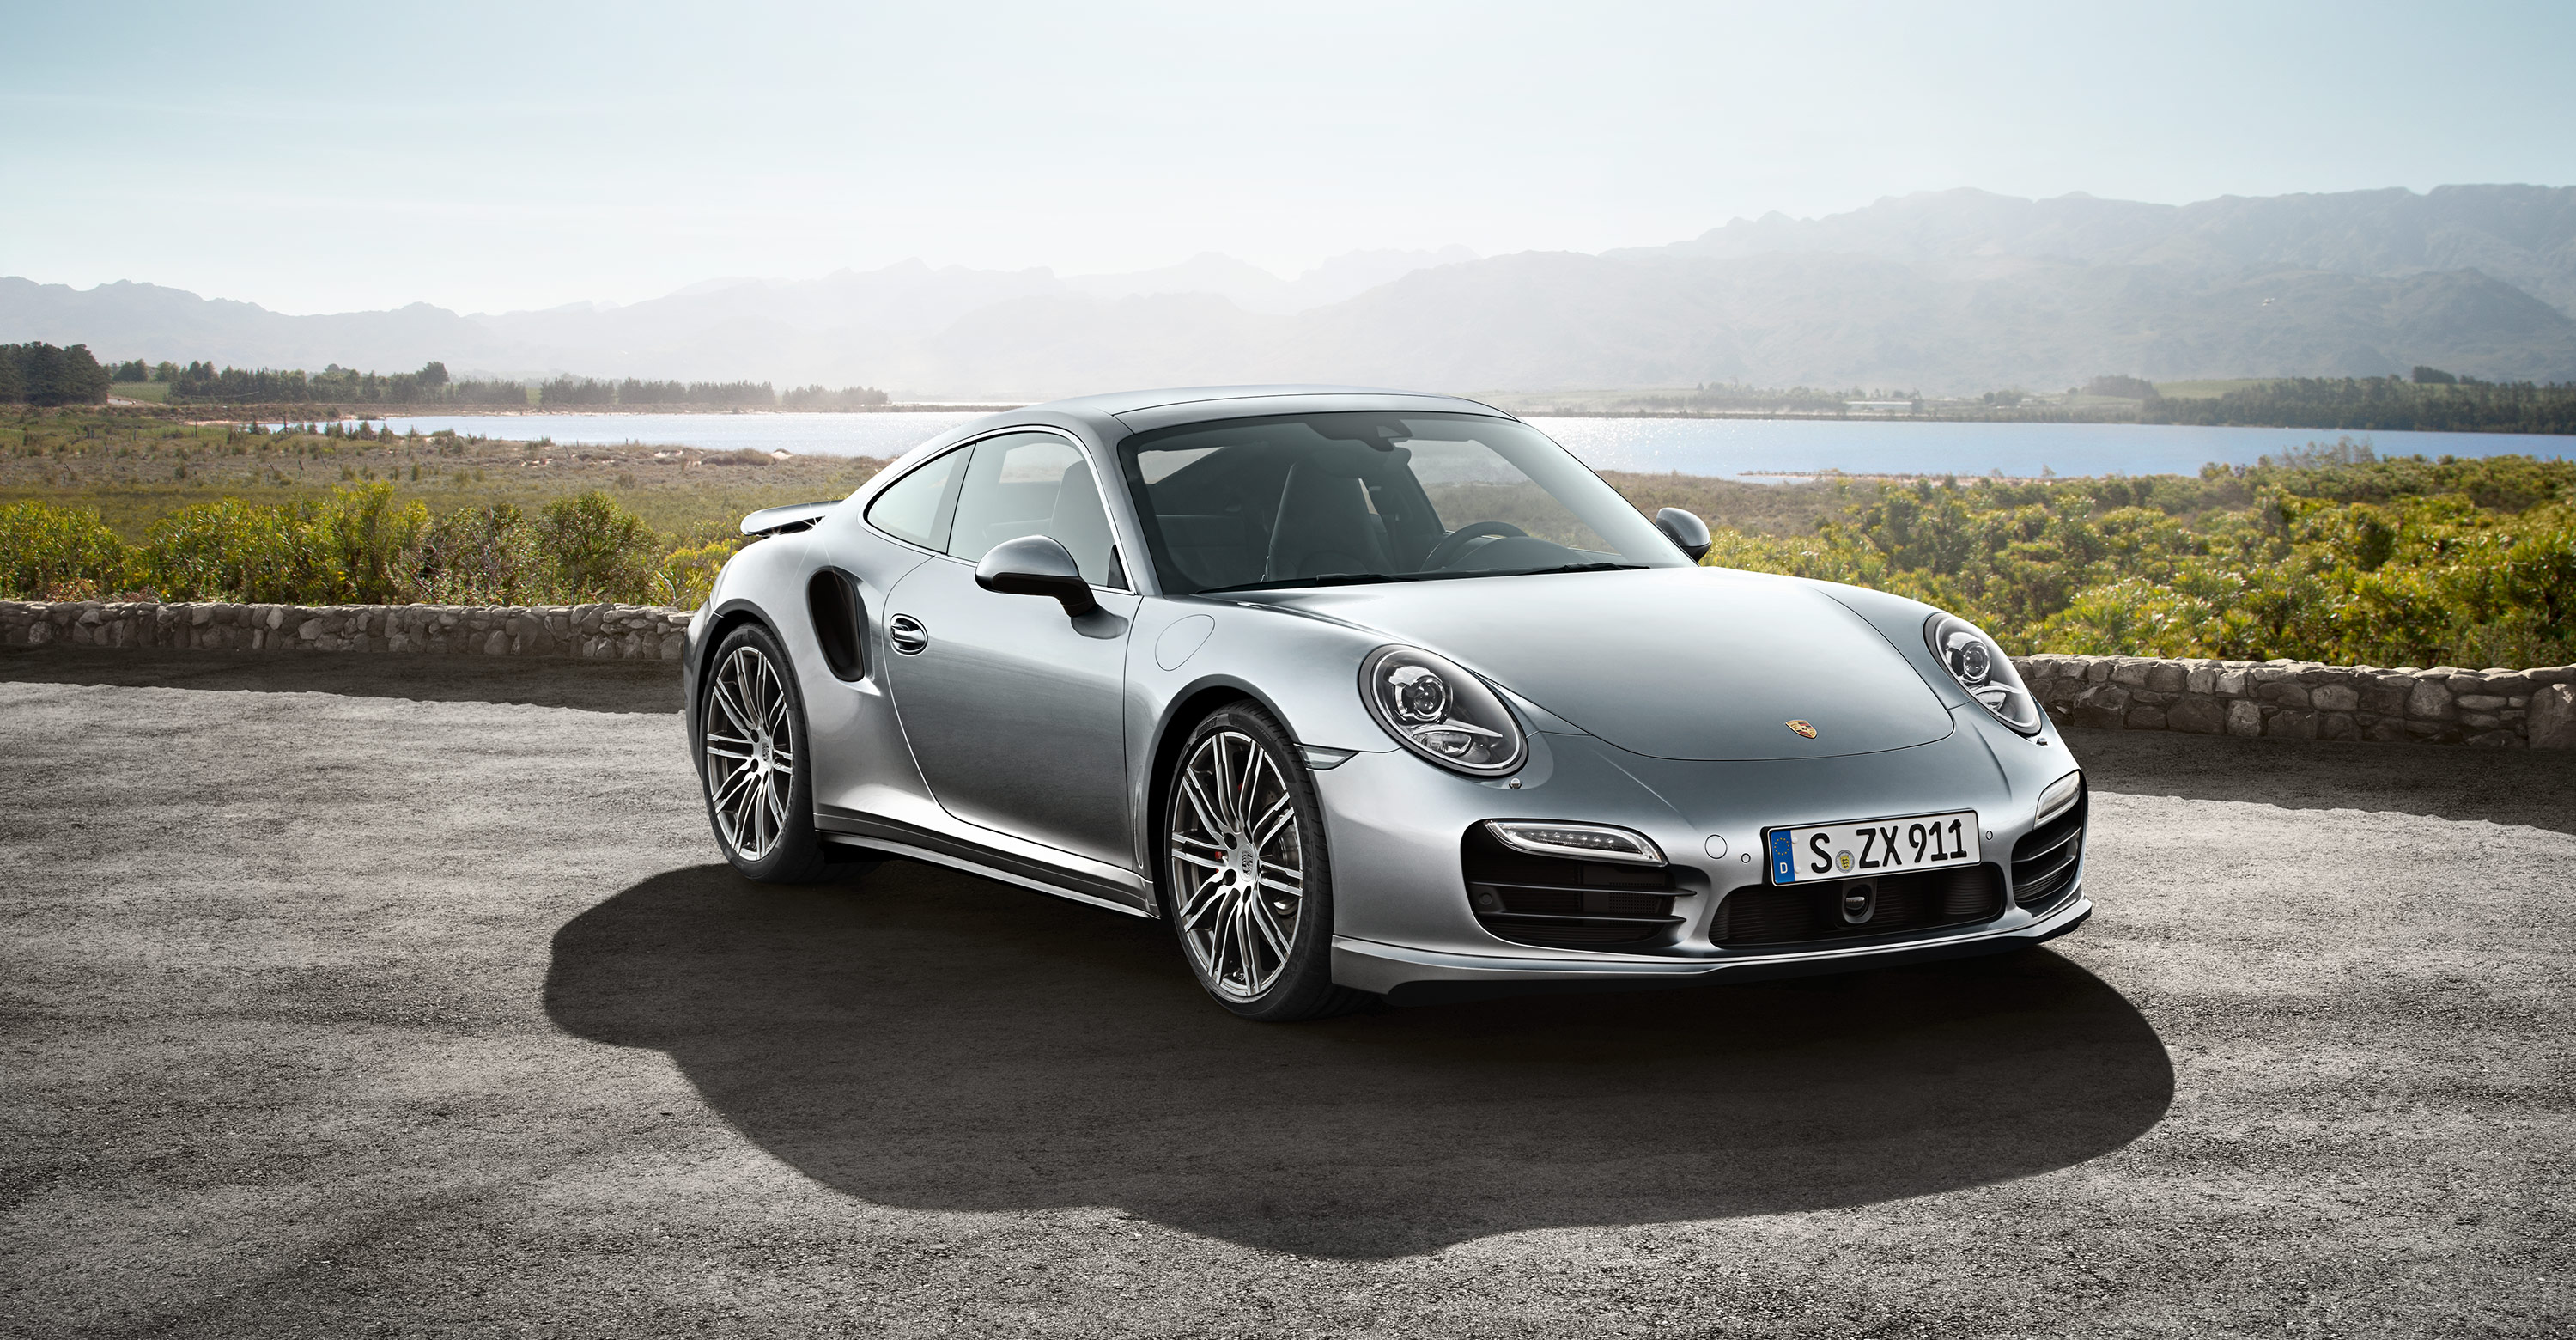 porsche plans 700 horsepower hybrid version of the 911 turbo s top speed. Black Bedroom Furniture Sets. Home Design Ideas